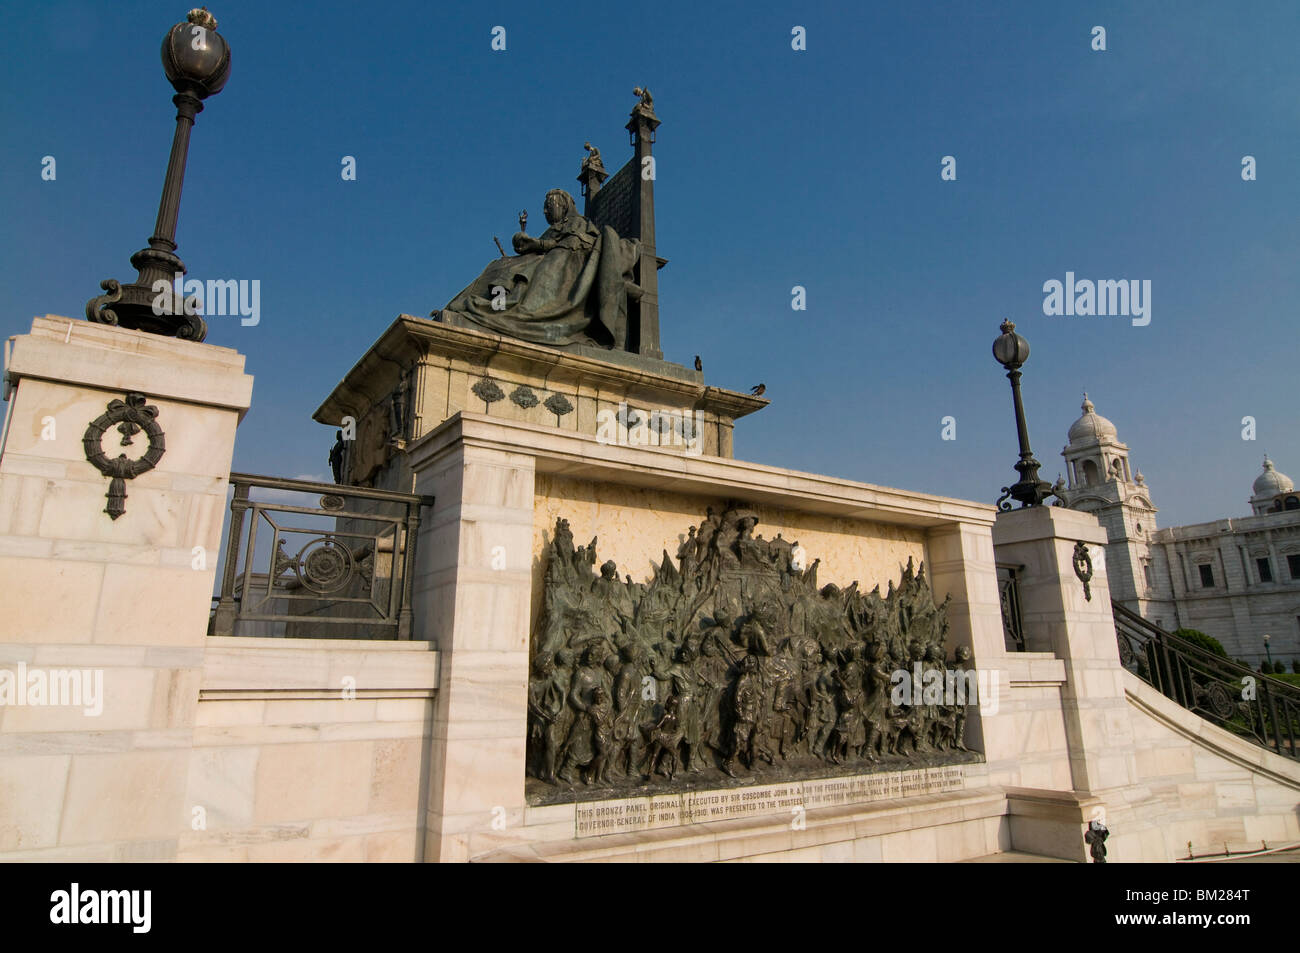 Statues at the imposing Victoria Monument, Kolkata, West Bengal, India, Asia - Stock Image